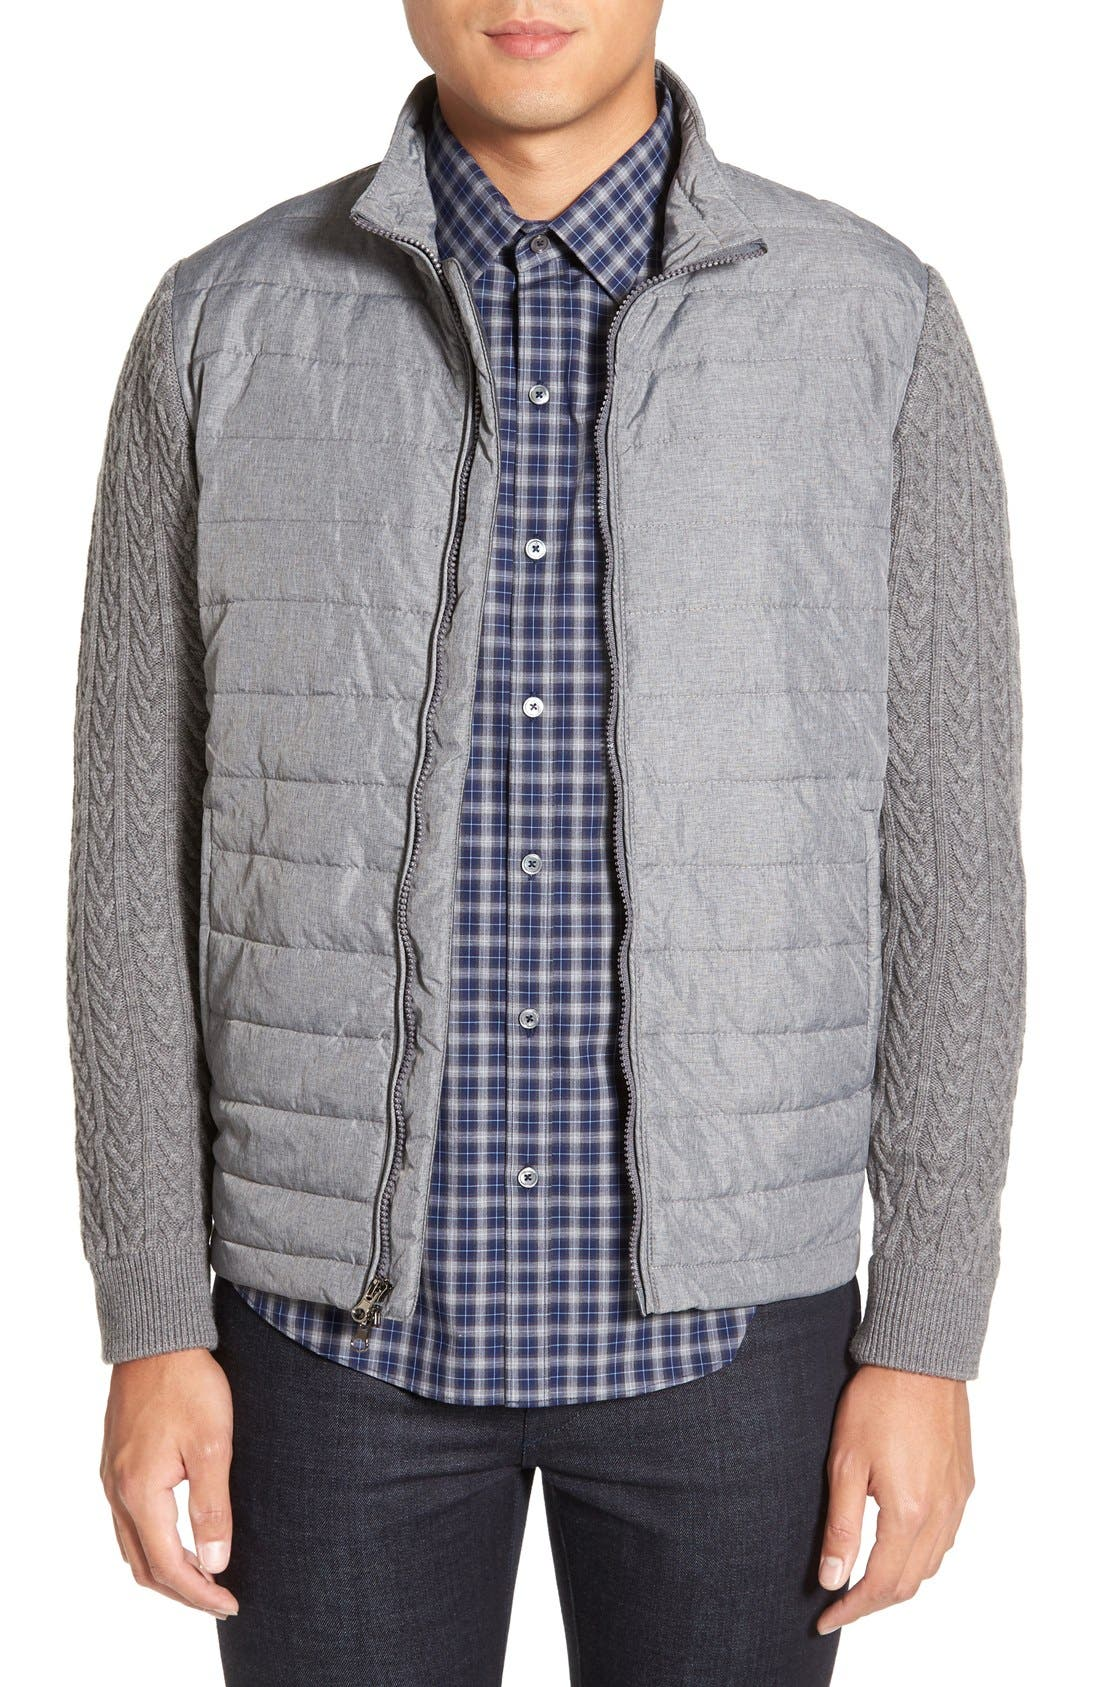 'Beacon' Trim Fit Quilted Cable Knit Zip Sweater,                             Main thumbnail 1, color,                             Grey